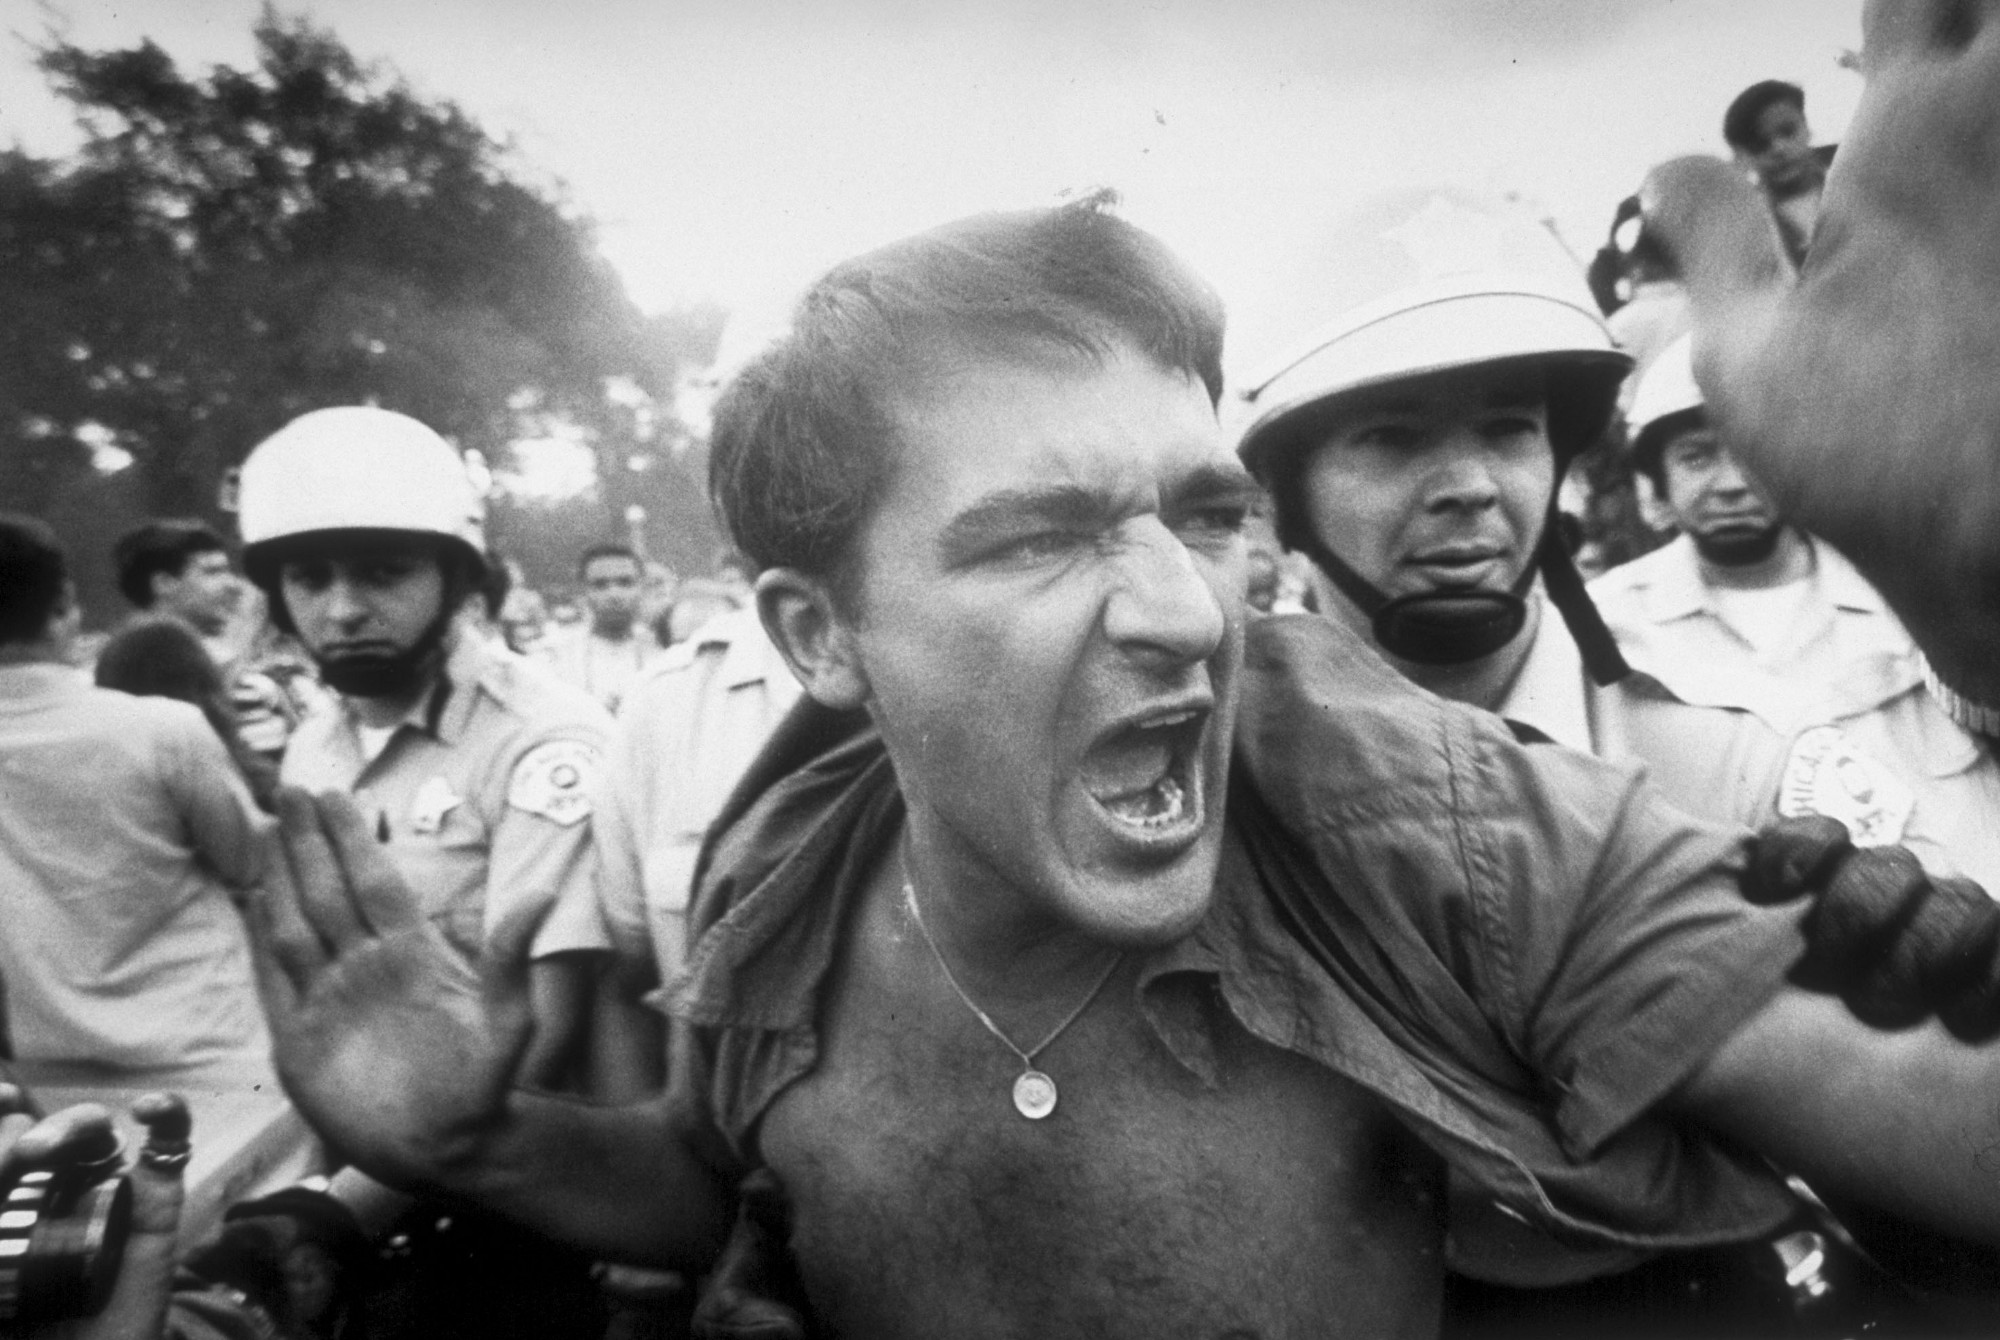 when the resistance confronted democrats in 1968 the crackdown was